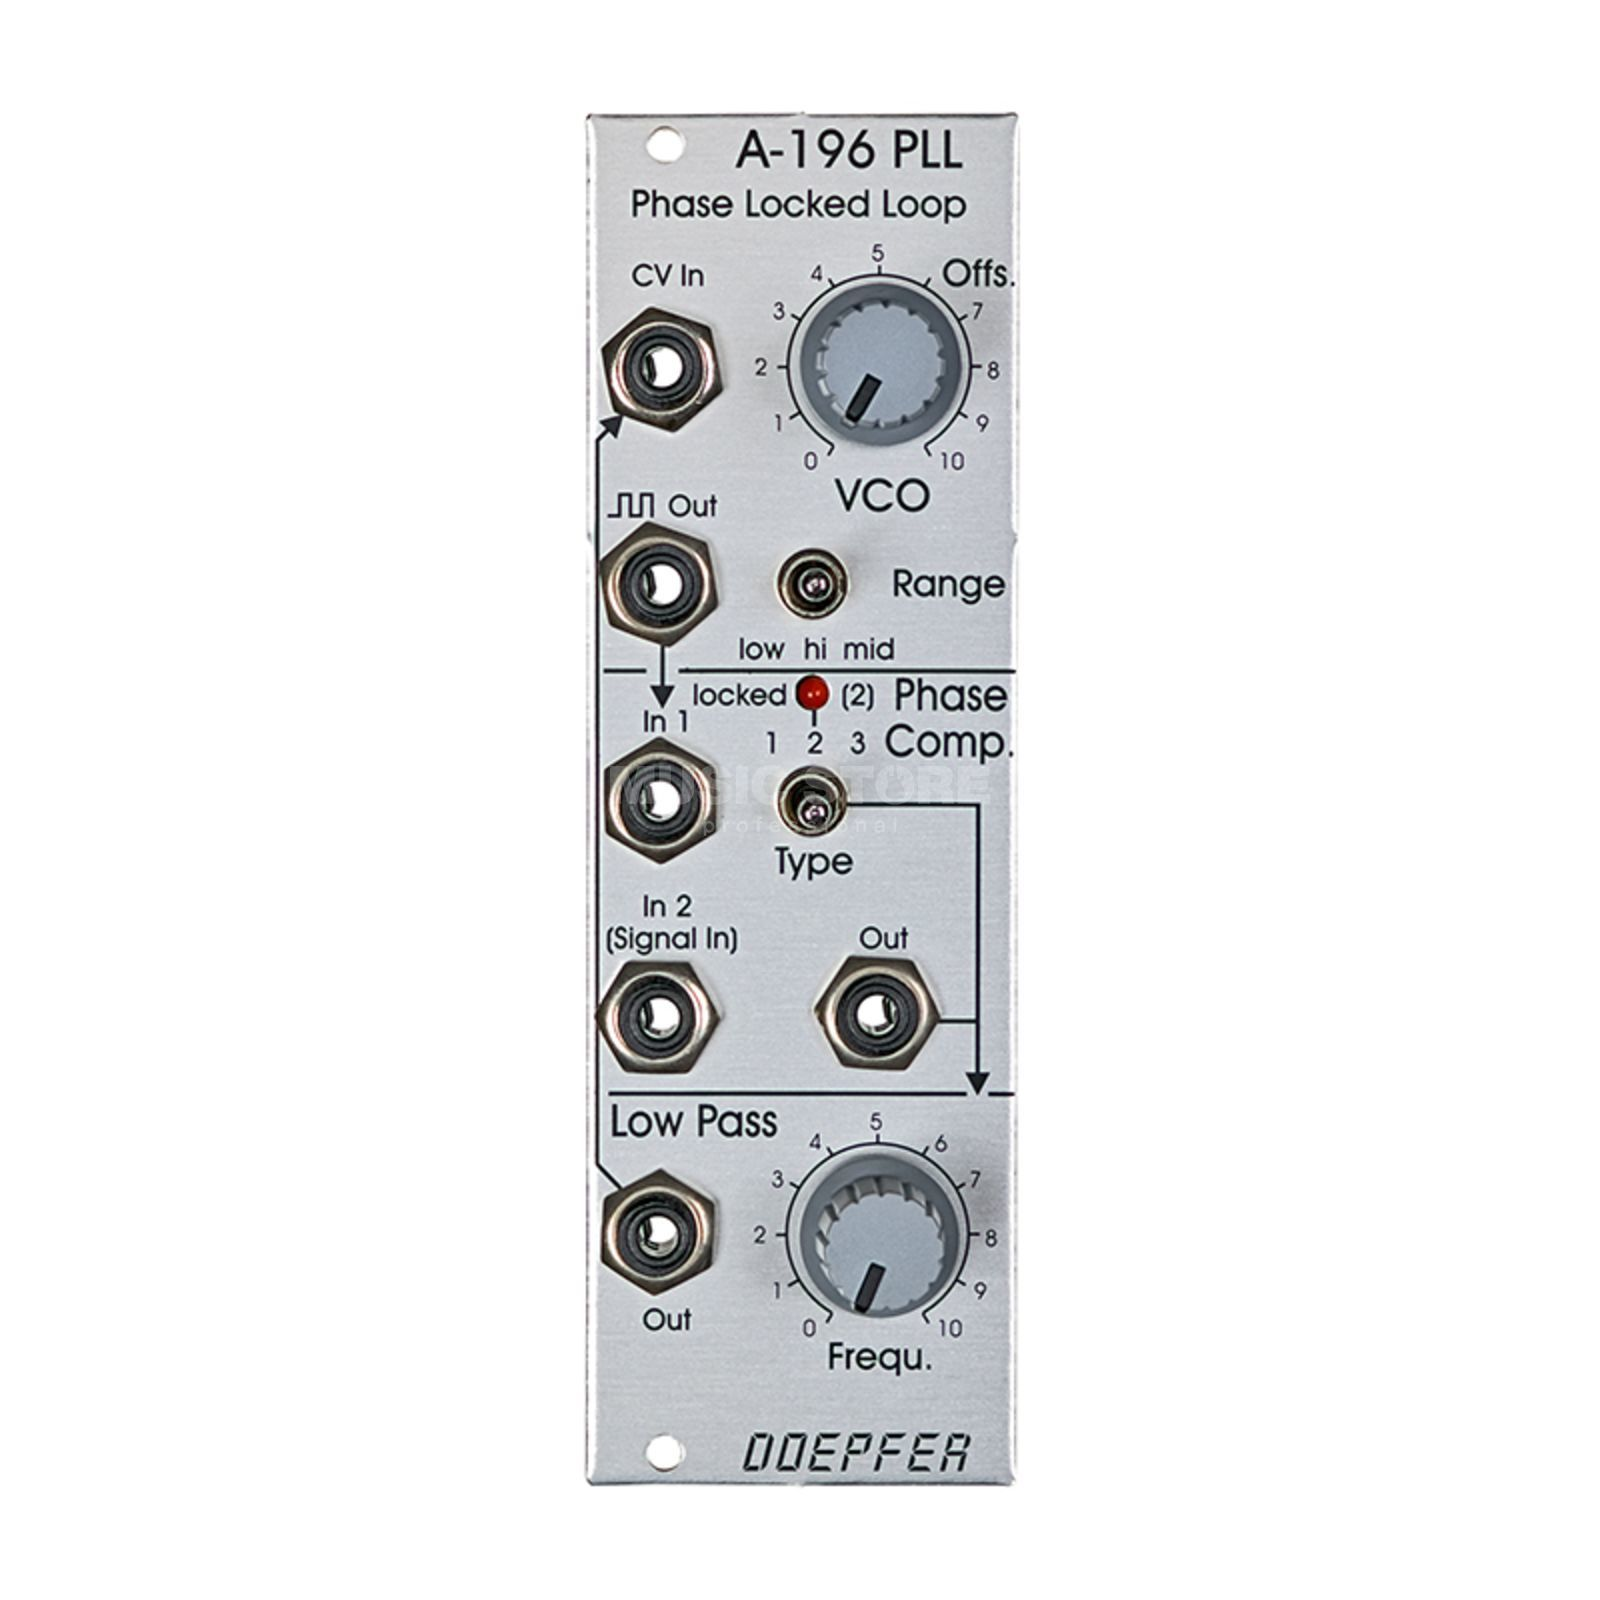 Doepfer A-196 Phase Locked Loop Produktbillede